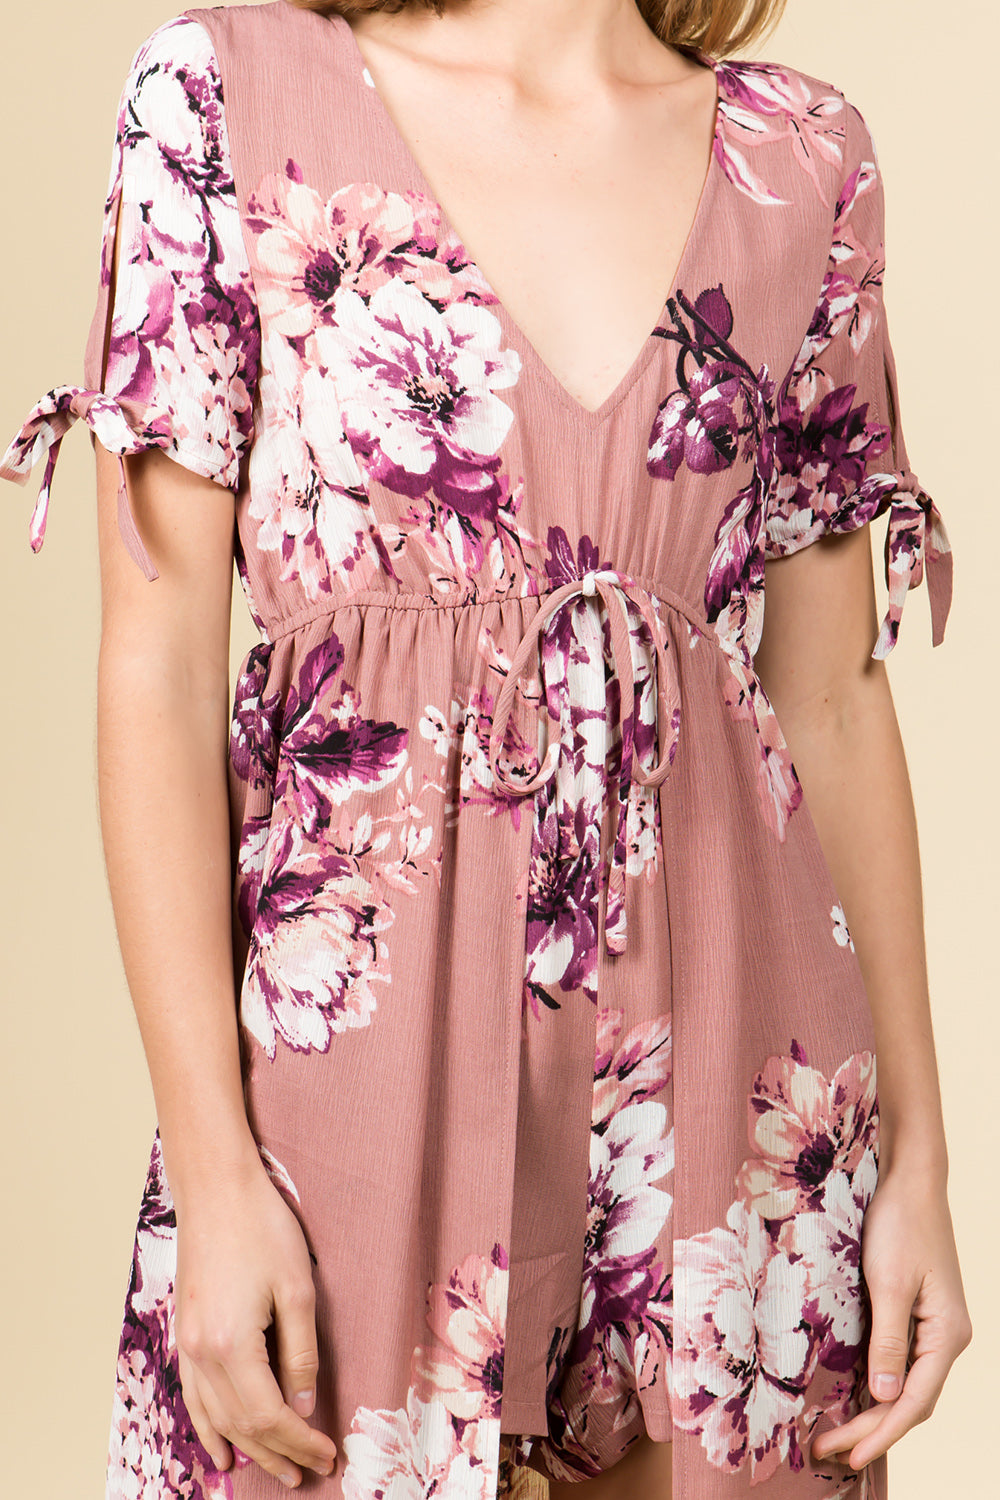 BLUSH FLORAL V-NECK ROMPER MAXI DRESS WITH TIE